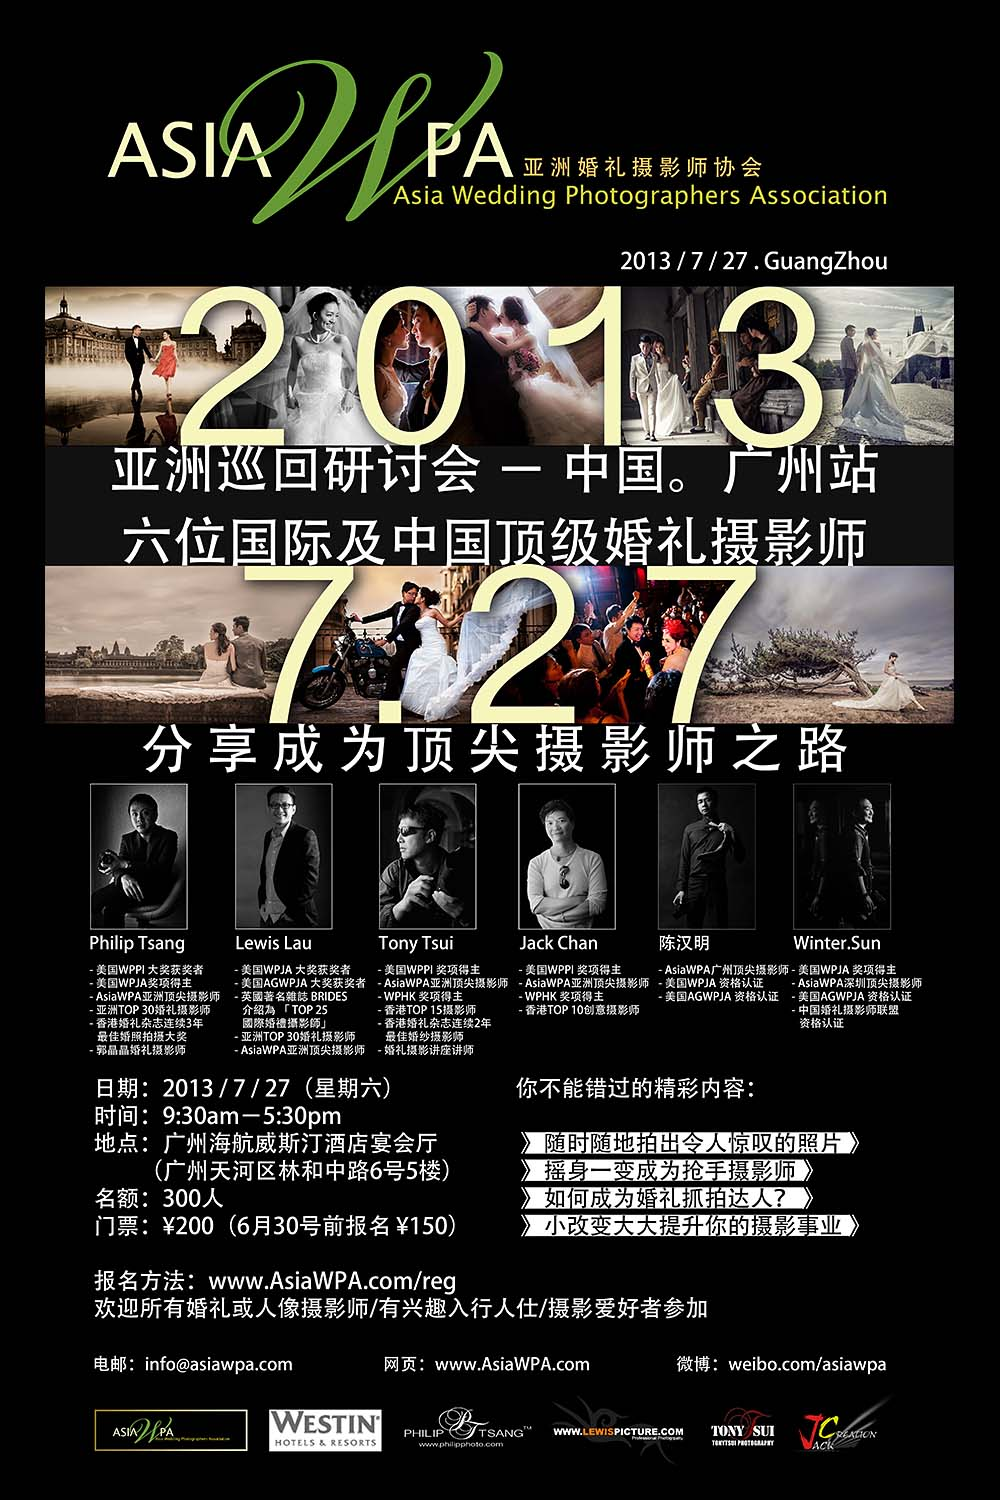 20130727 AsiaWPA GuangZhou Seminar Poster10s lr Workshops & Seminars